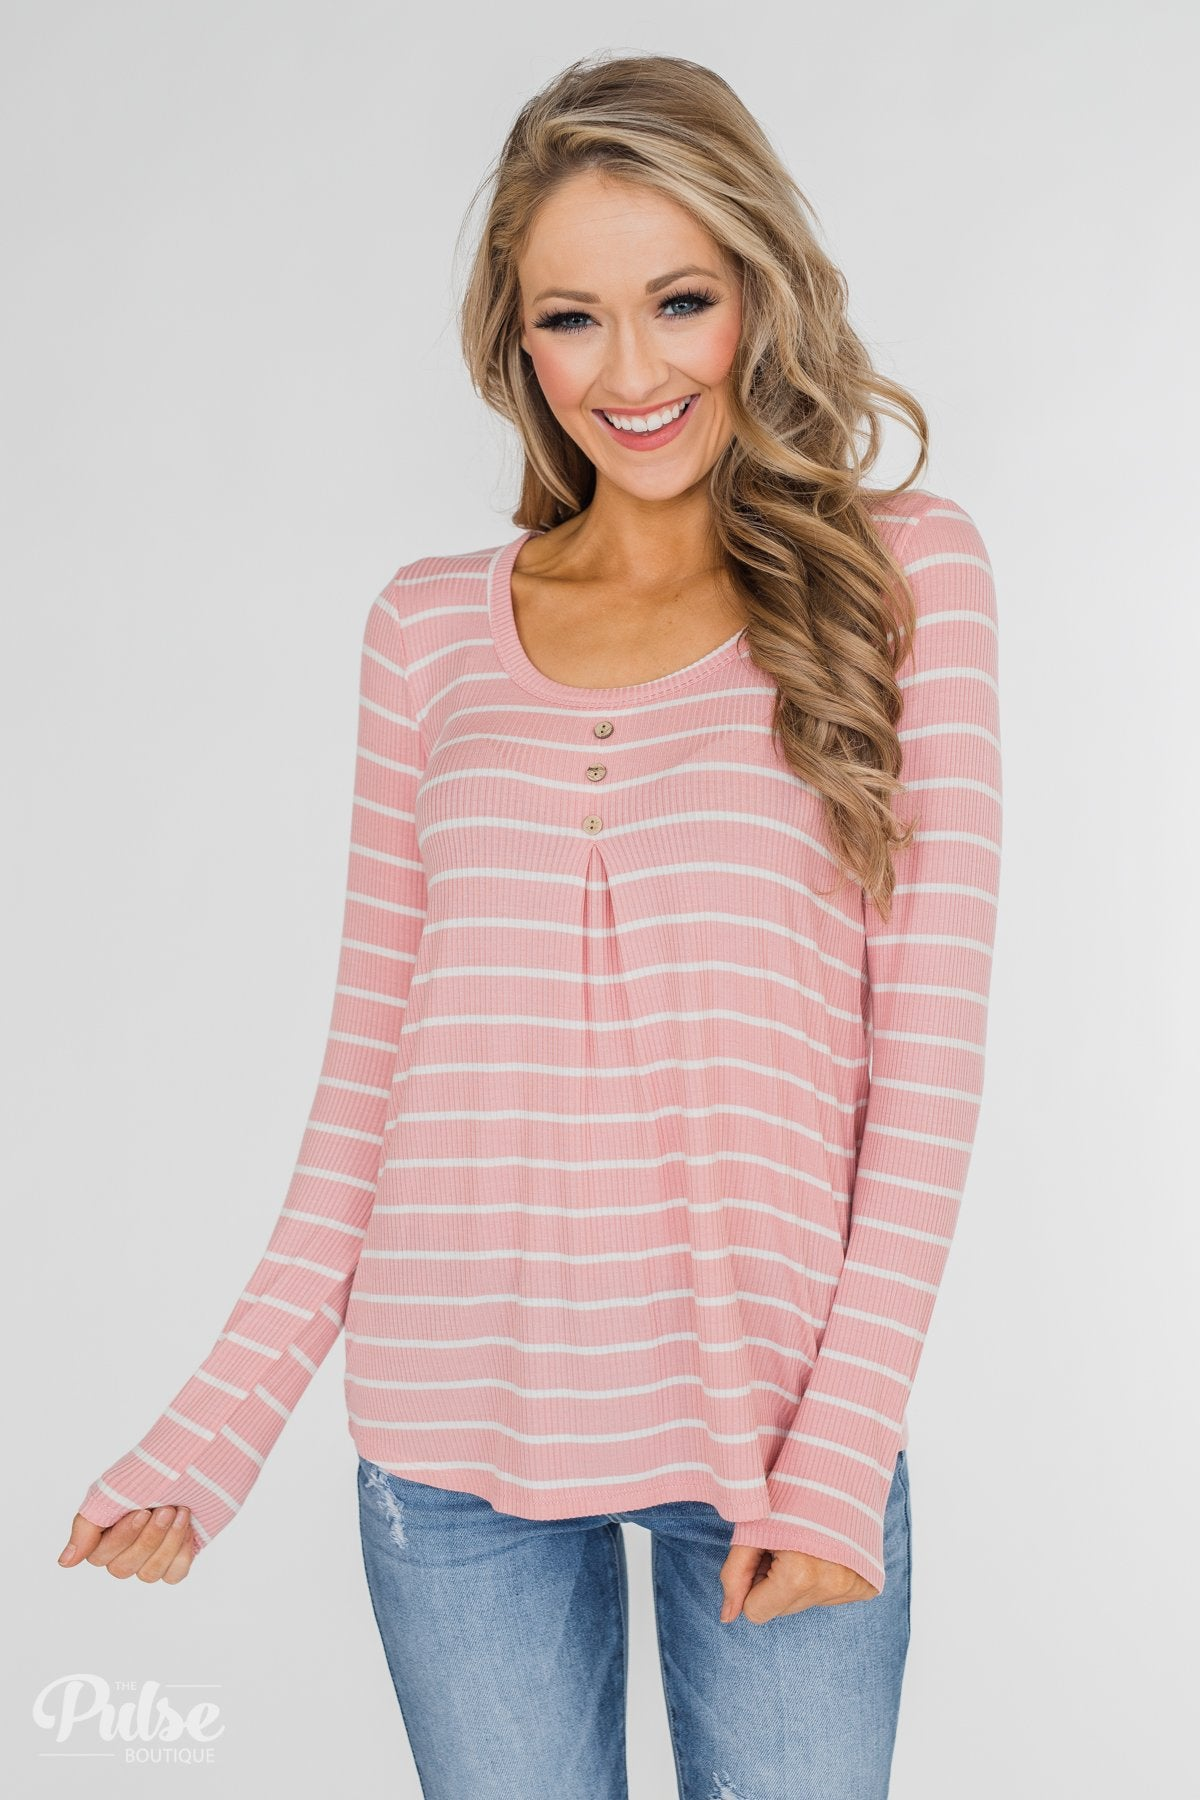 Never Forget You Pleated Striped Top- Pink